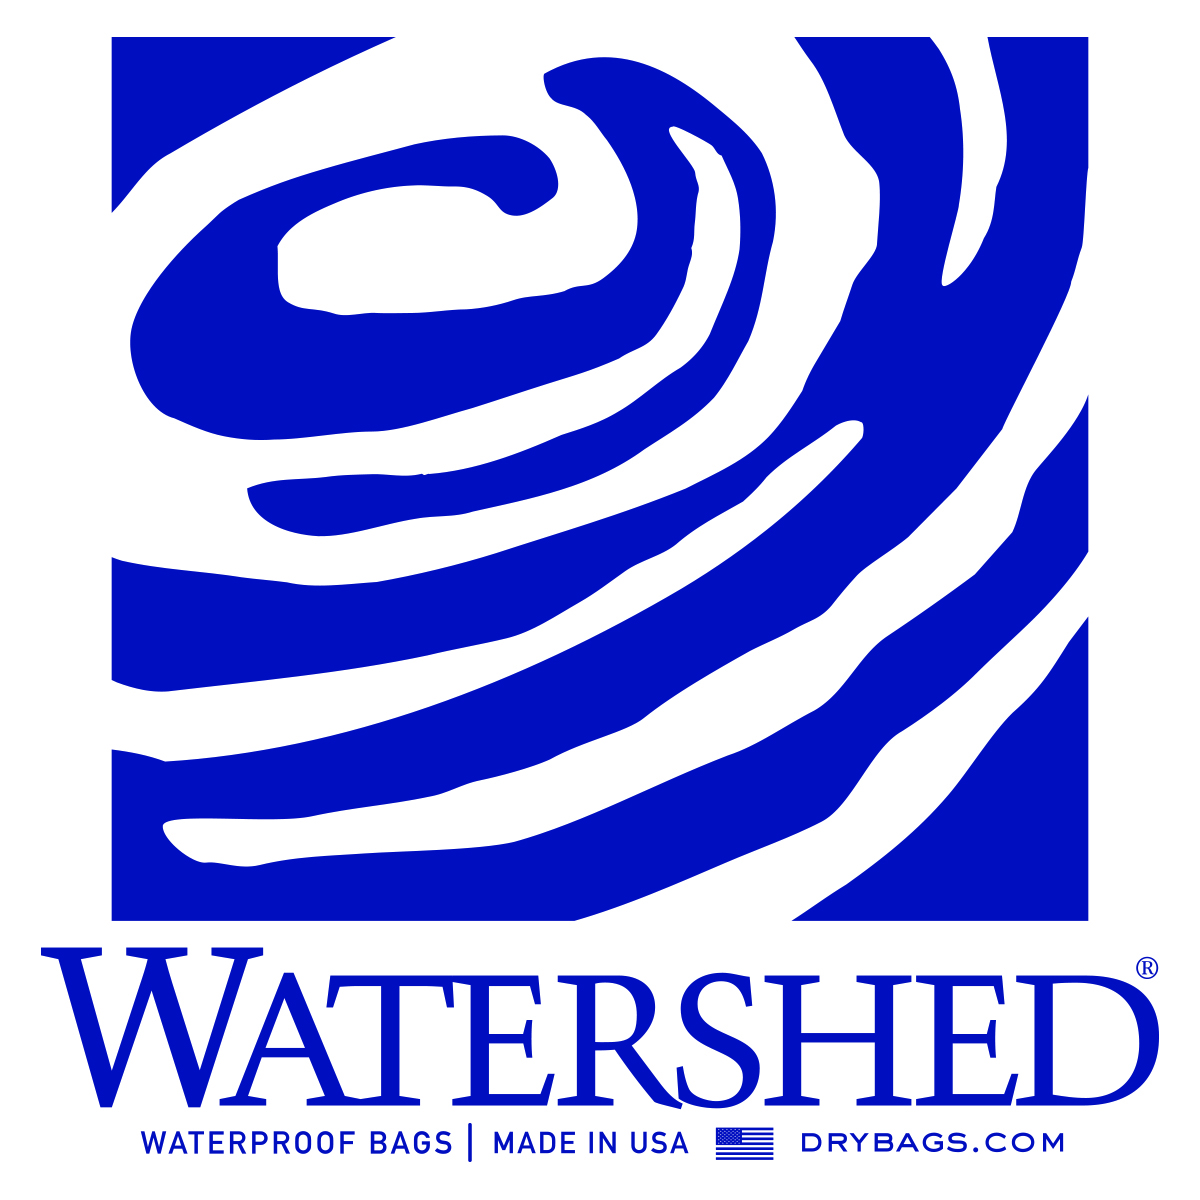 Watershed USA